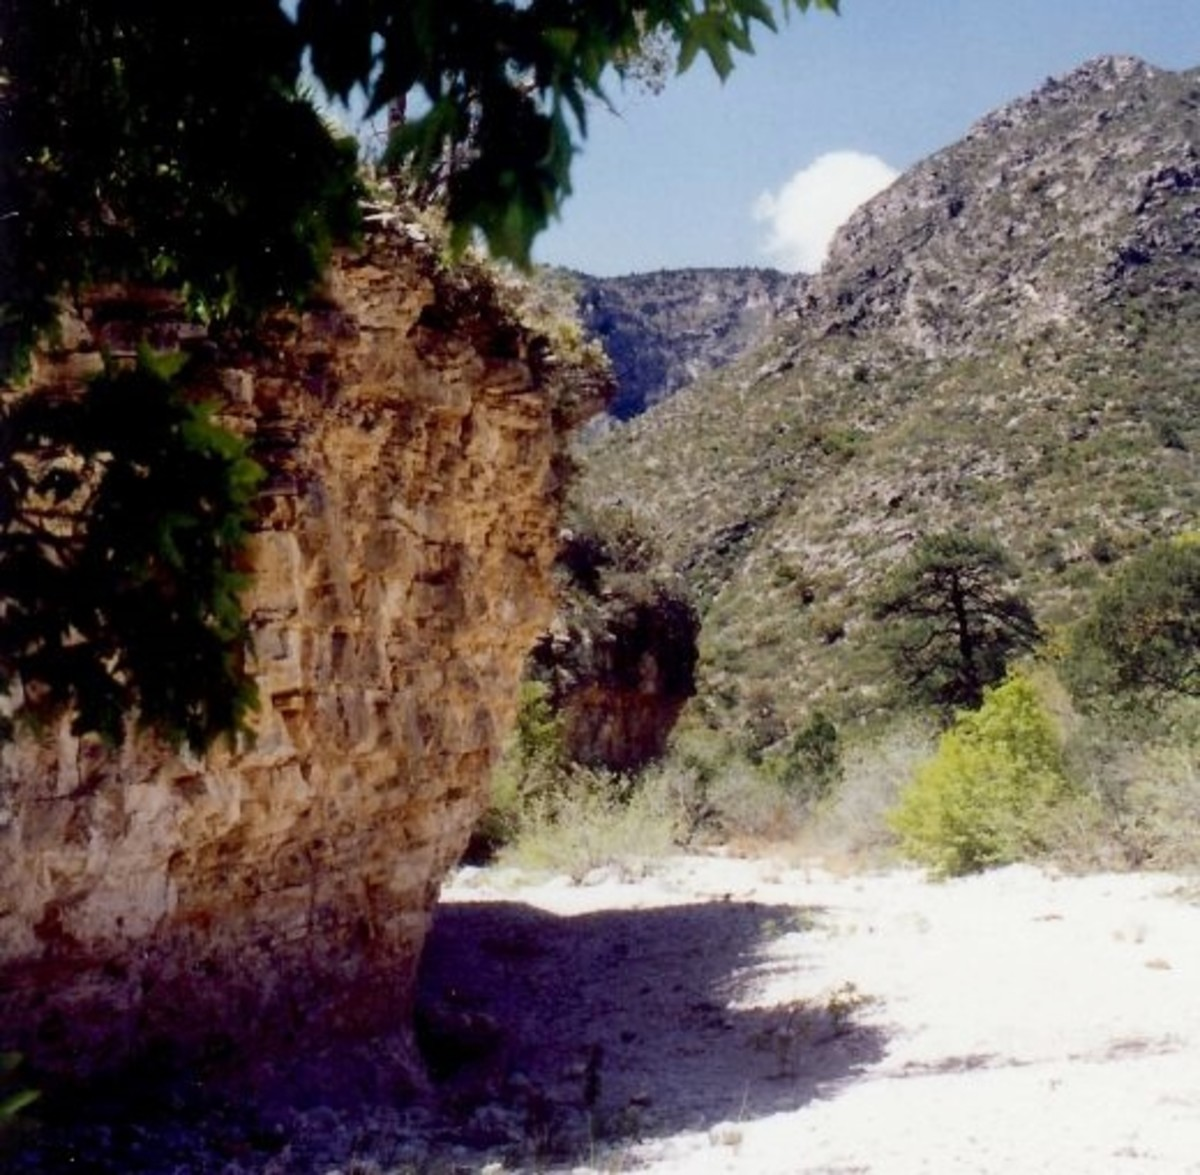 Hiking the 6.8 mile round trip to the Grotto and Hunter Cabin in McKittrick Canyon / Guadalupe Mountain National Park